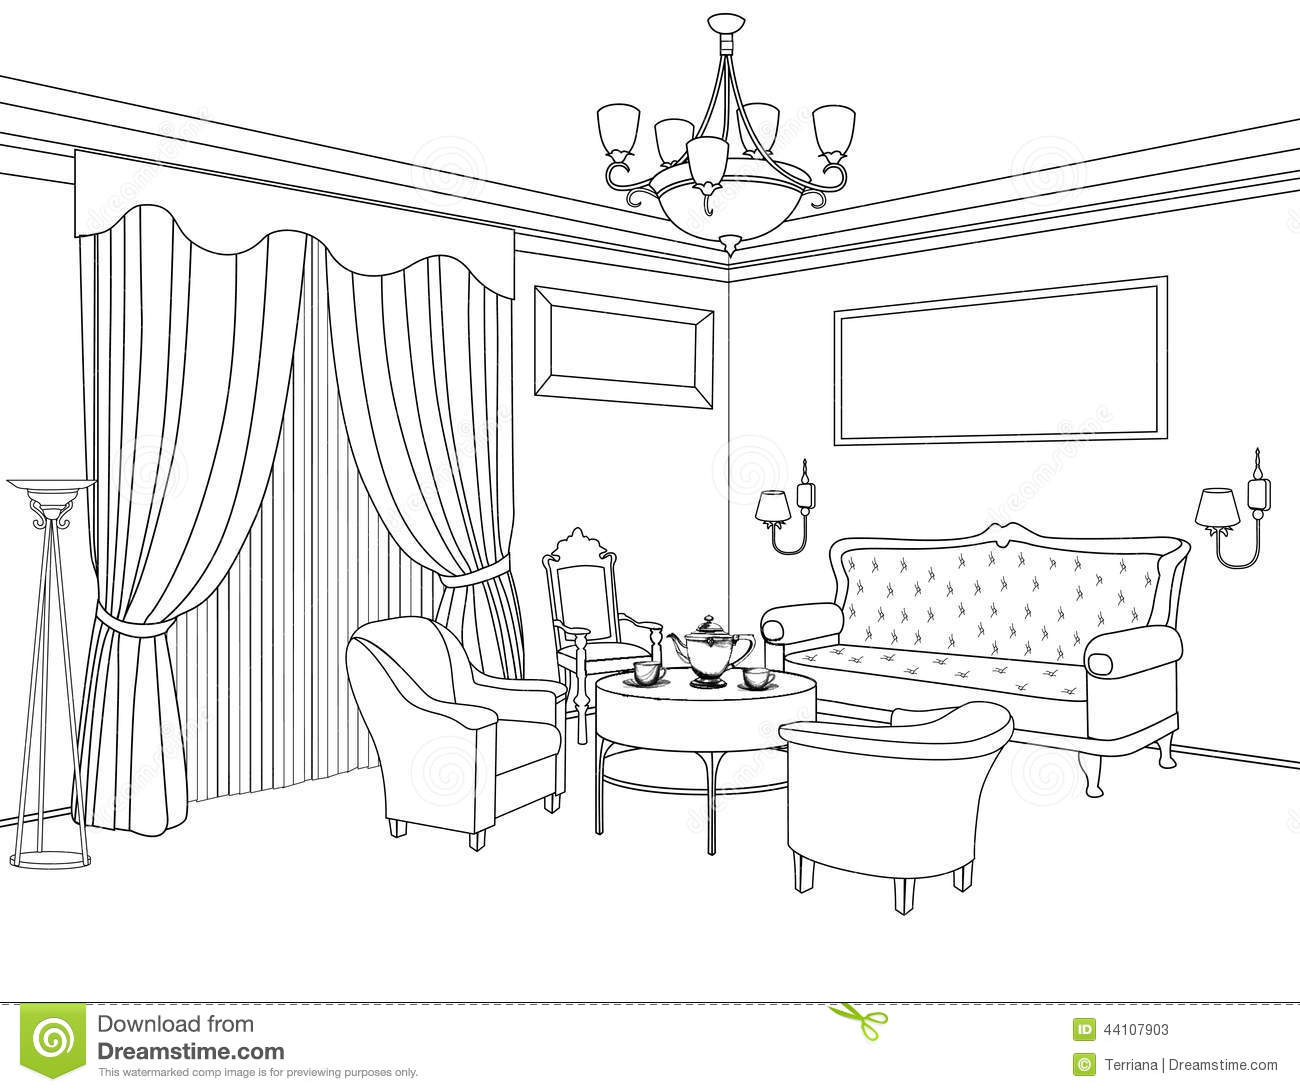 Interior outline sketch furniture architectural design for Decor outline